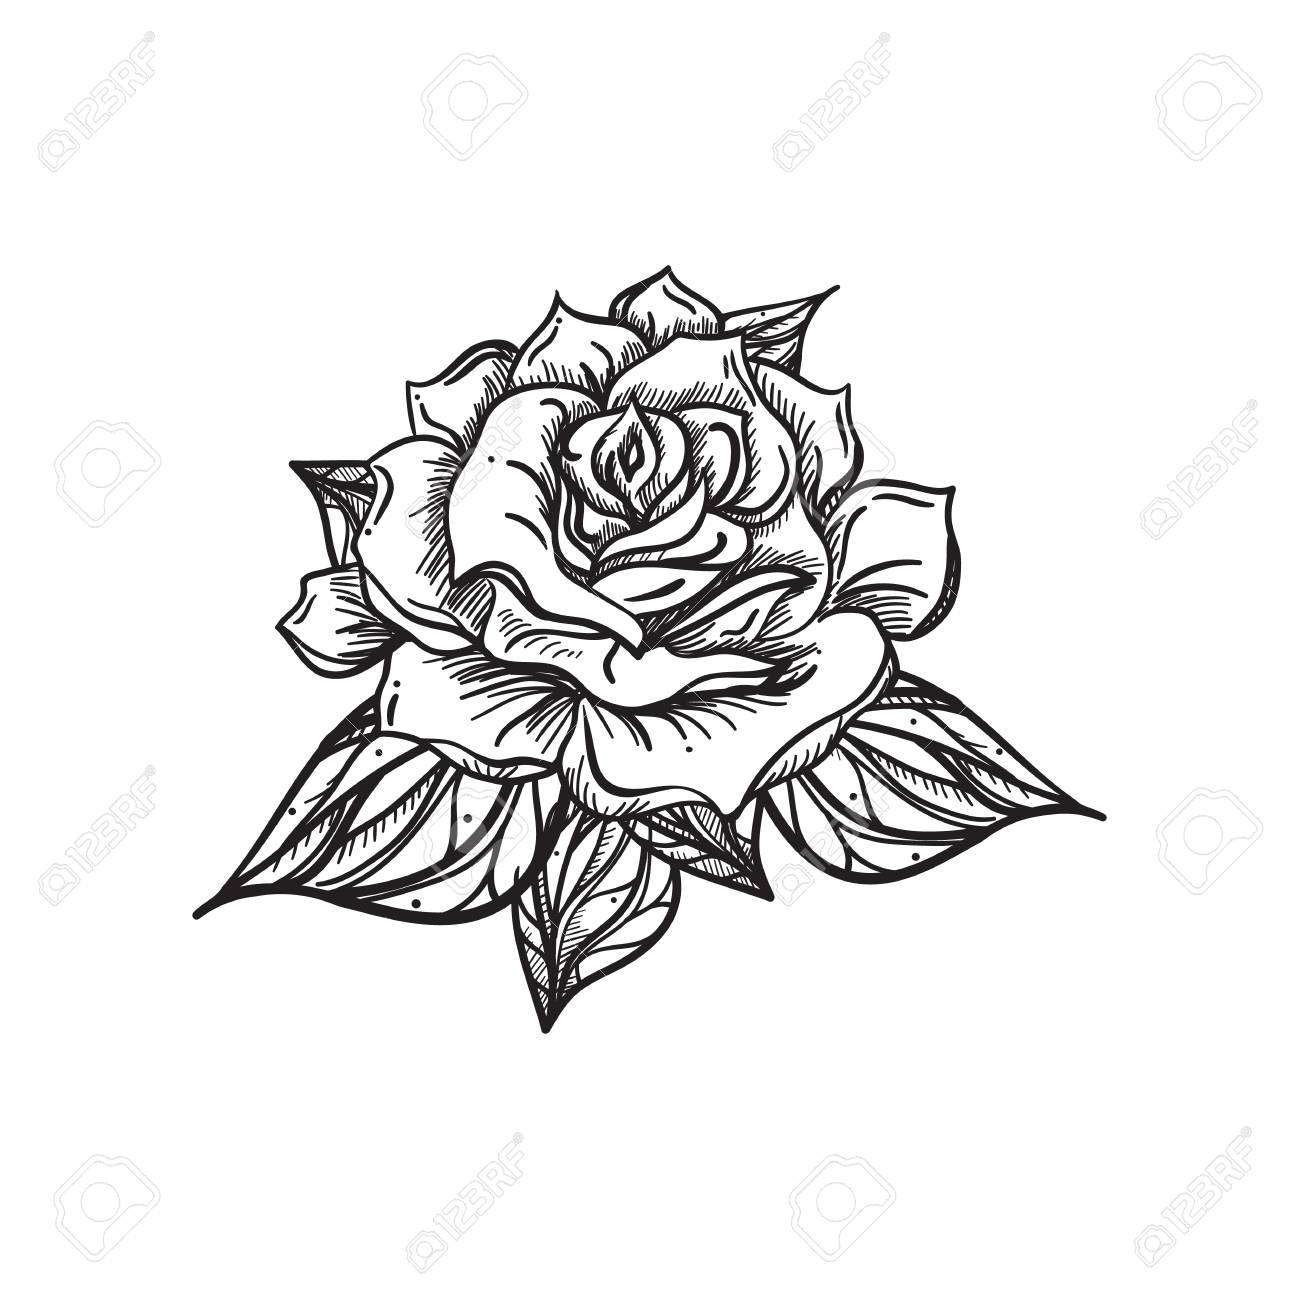 hand drawn wedding rose flower template for wedding holiday